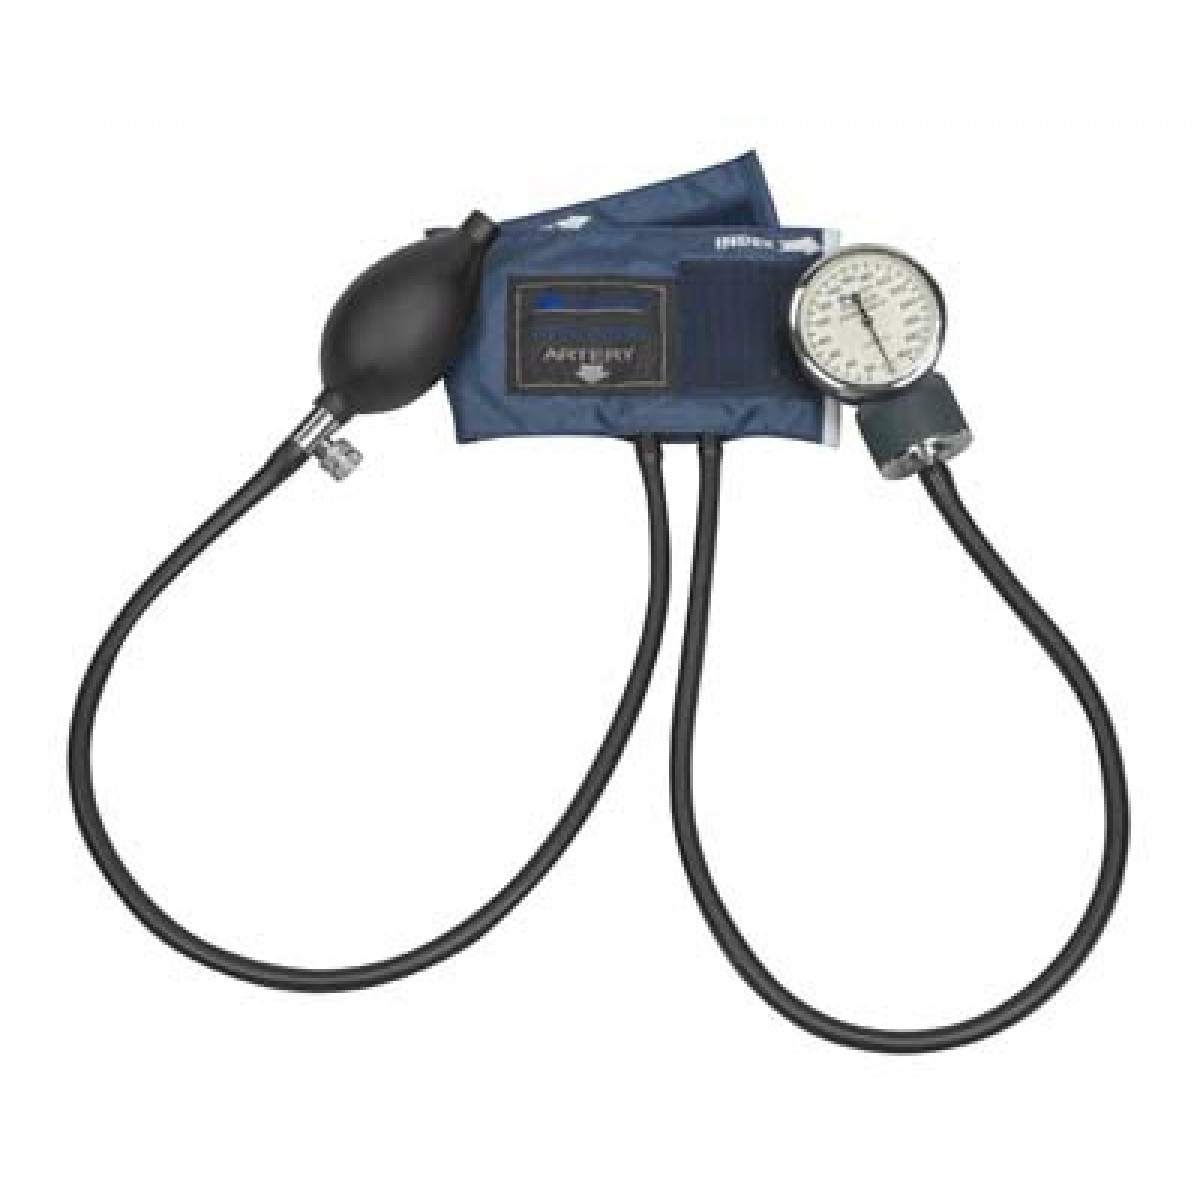 Infant Precision Aneroid Sphygmomanometers With Blue Nylon